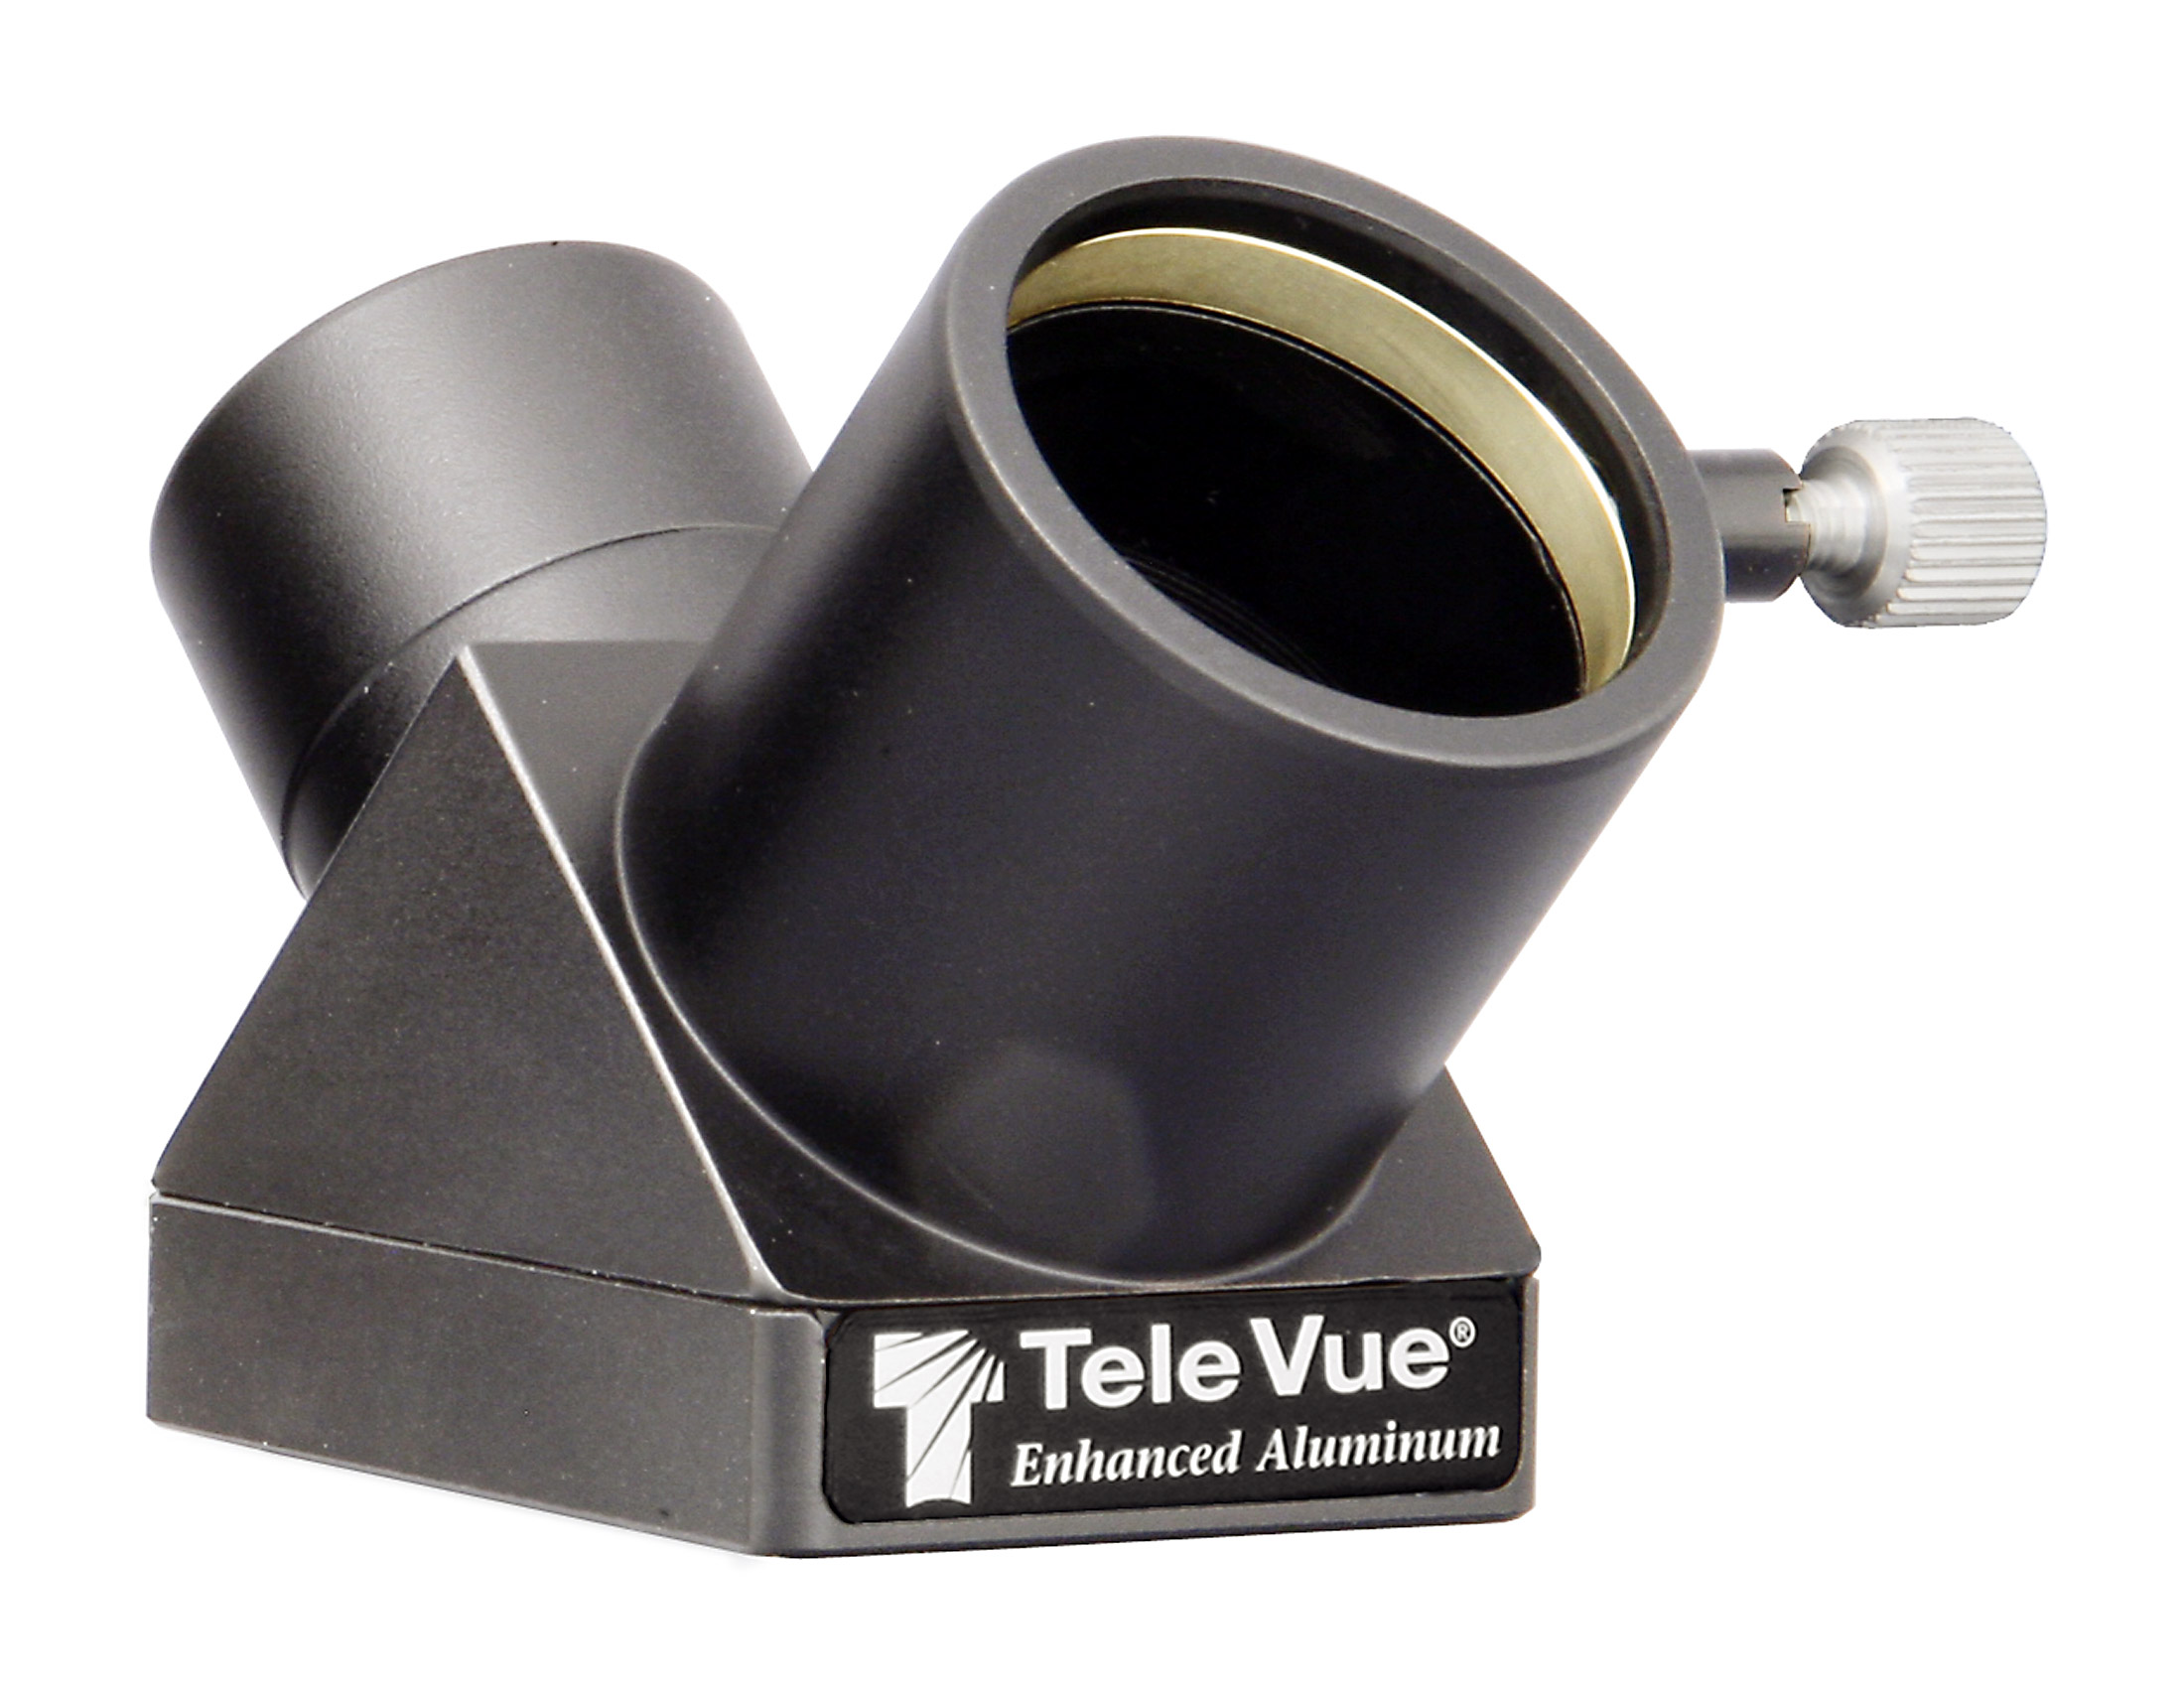 Tele Vue Enhanced Aluminium 90º Diagonals